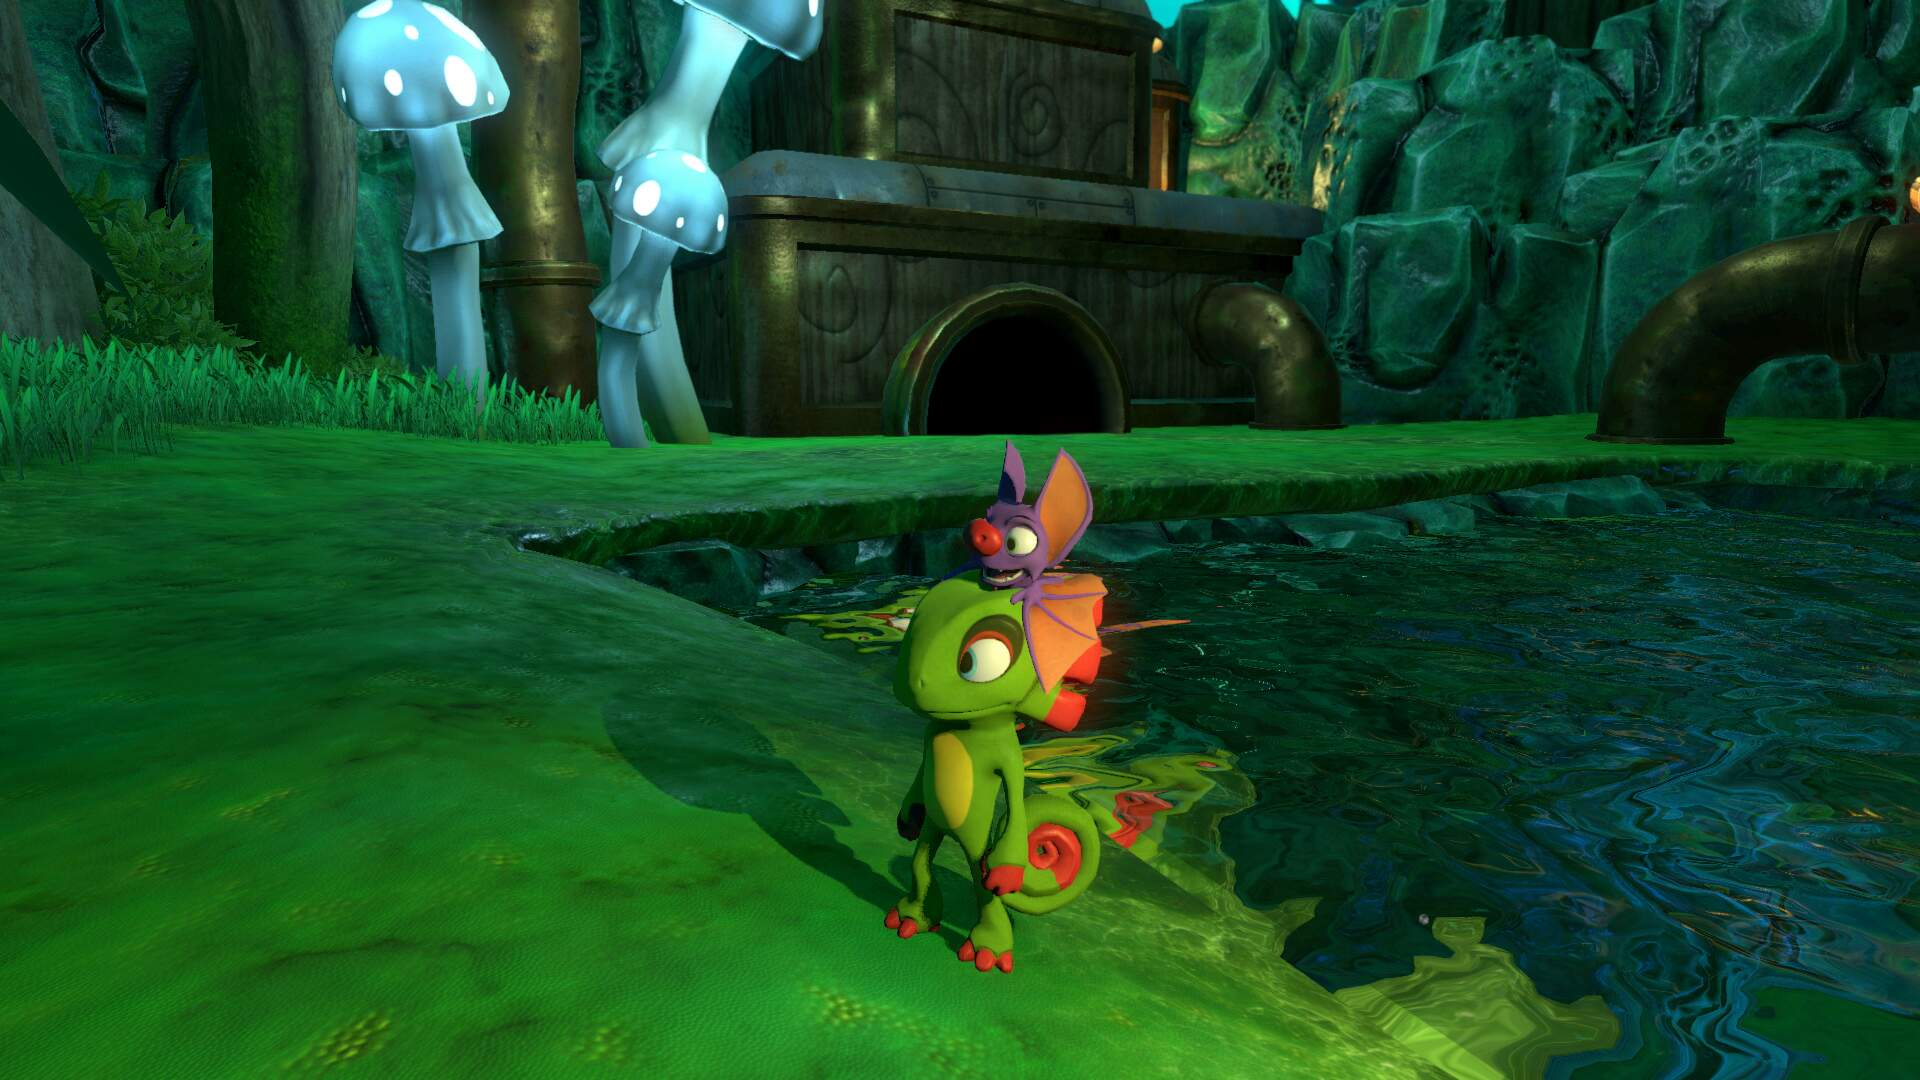 Yooka Laylee Pirate Treasure Location Guide